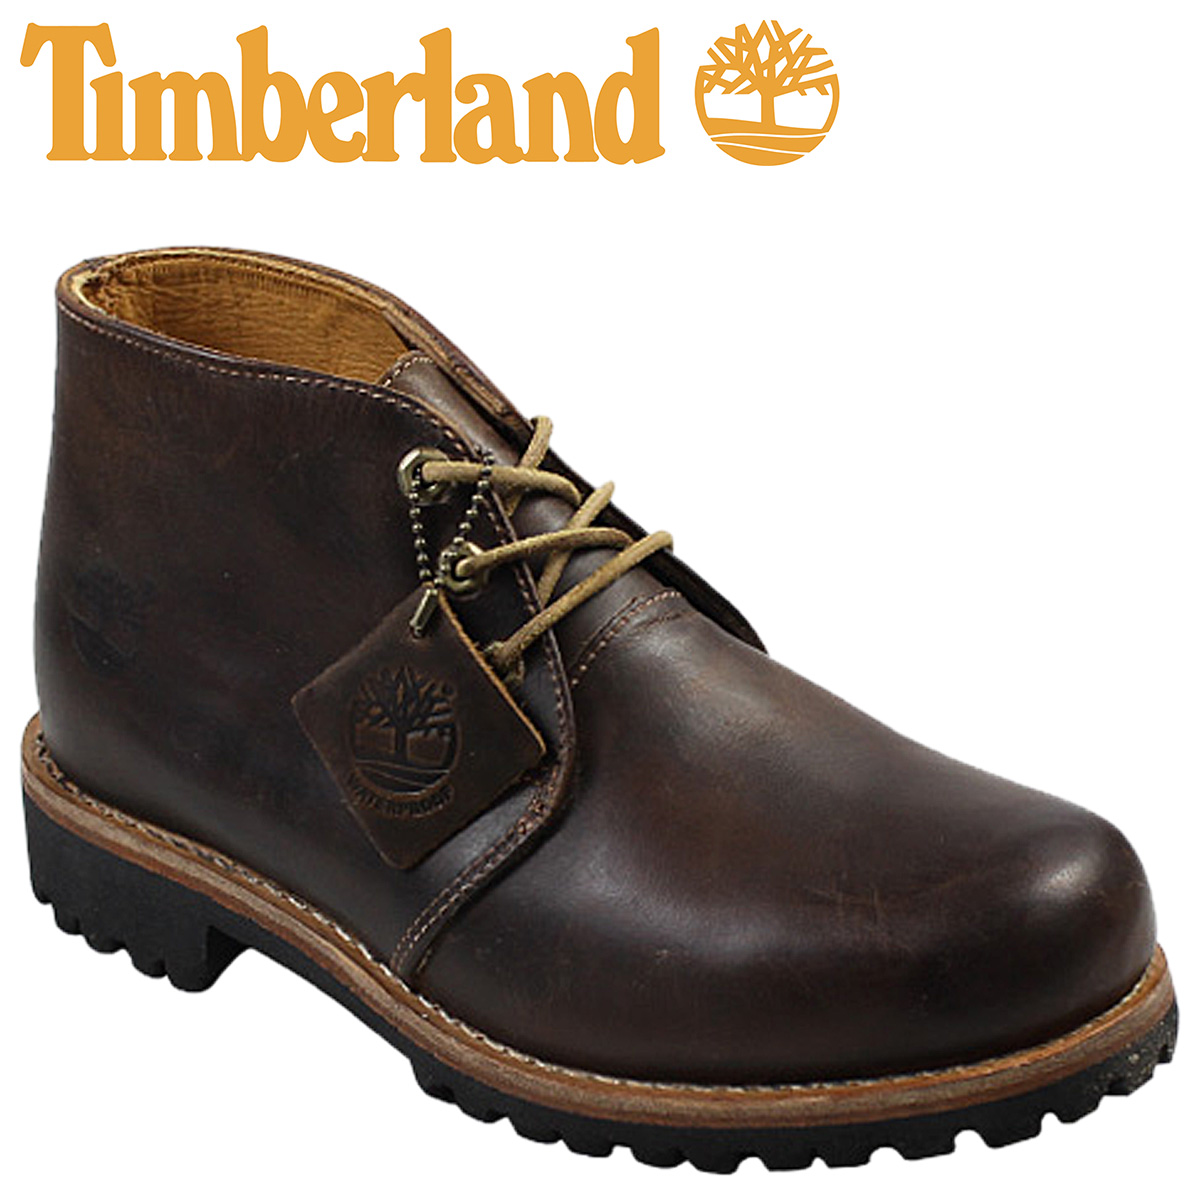 Rugged エルティーディ Chukka Timberland Earthkeepers Heritage Tundra Ltd Nubuck Men 5903r 4 3 New In